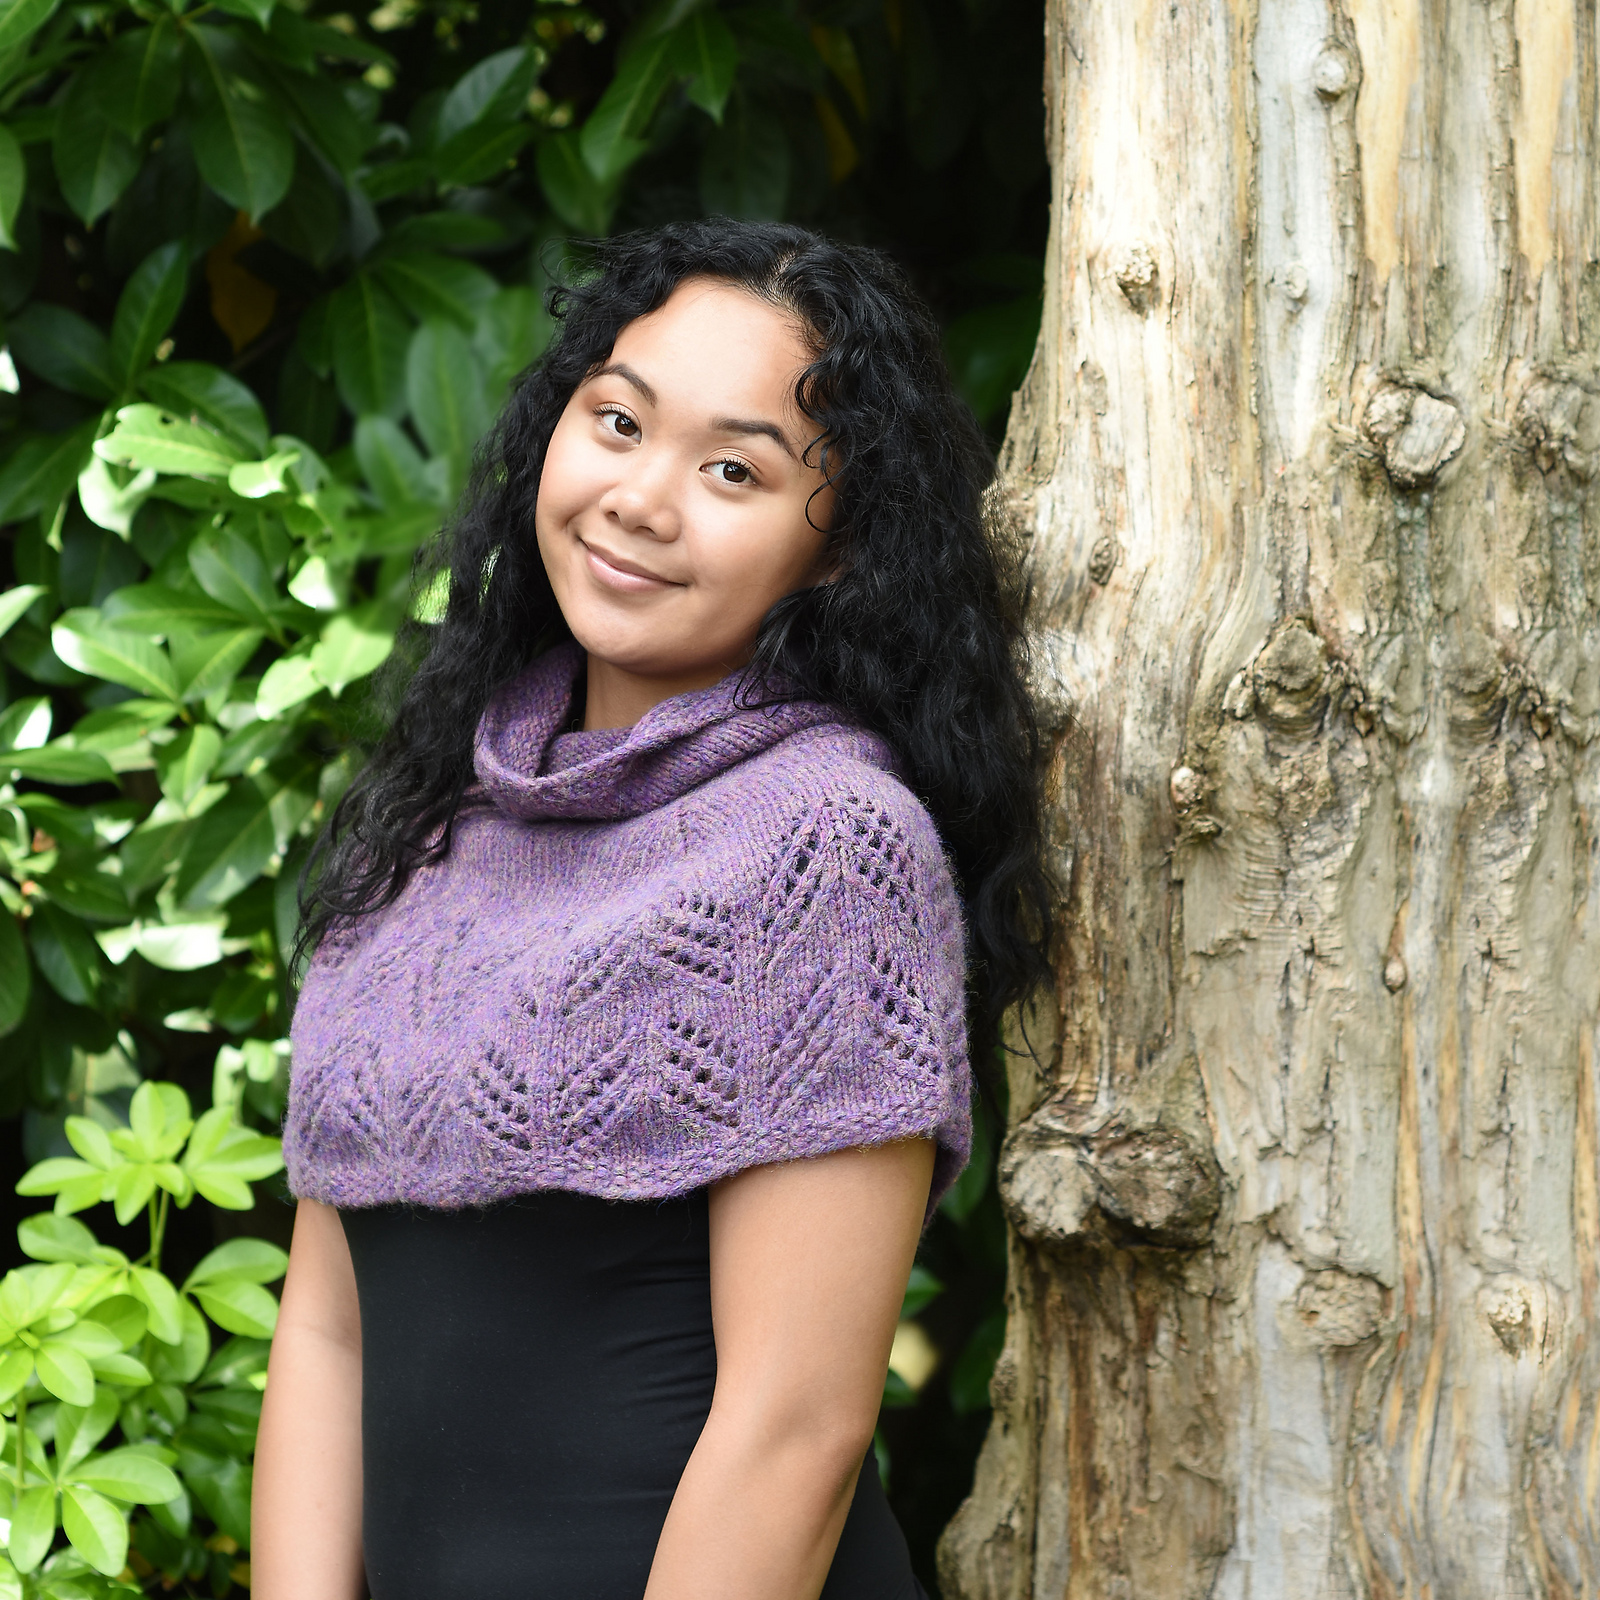 Cascade Yarns warm shoulder wrap pattern with easy lace knitting pattern in heavy worsted weight yarn